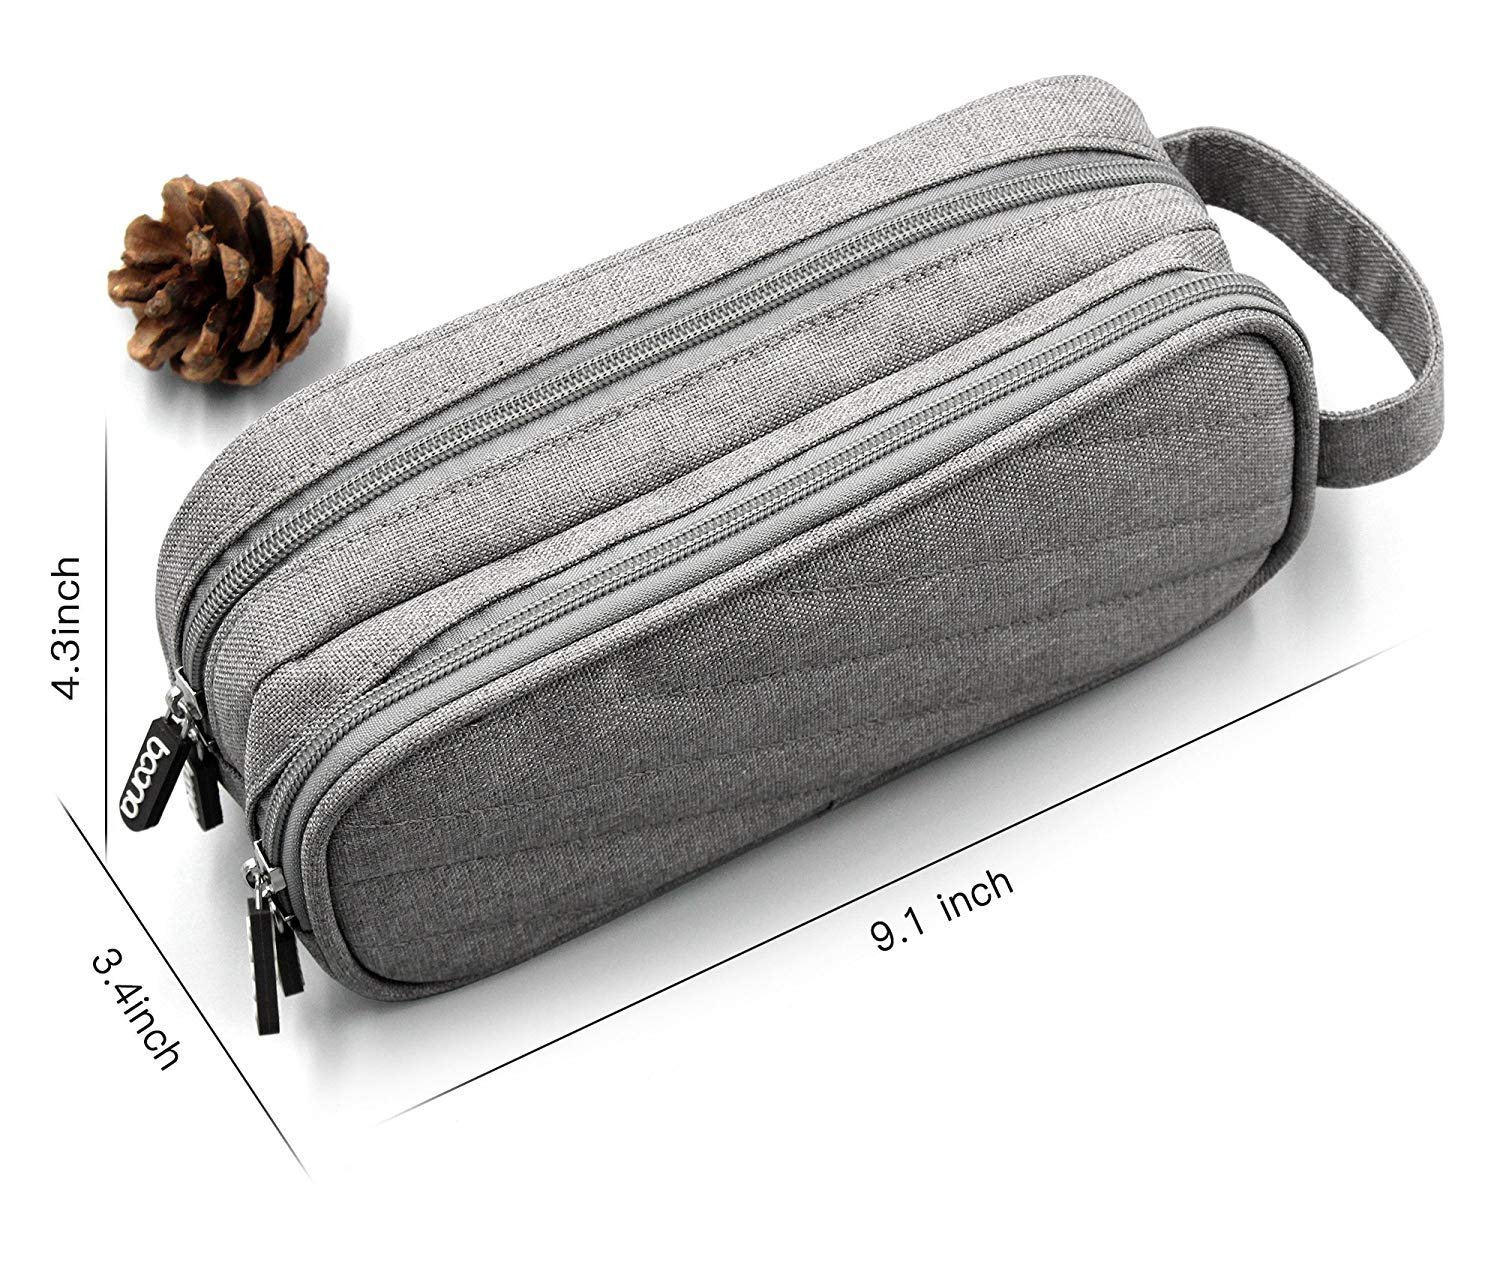 Electronics Accessories Organizer Bag, Double Layer Cable Cord Management Bag, Travel Camping Gear, Small Gadget Pouch for Plugs, Earphone and More(Grey) by YOYL (Image #3)